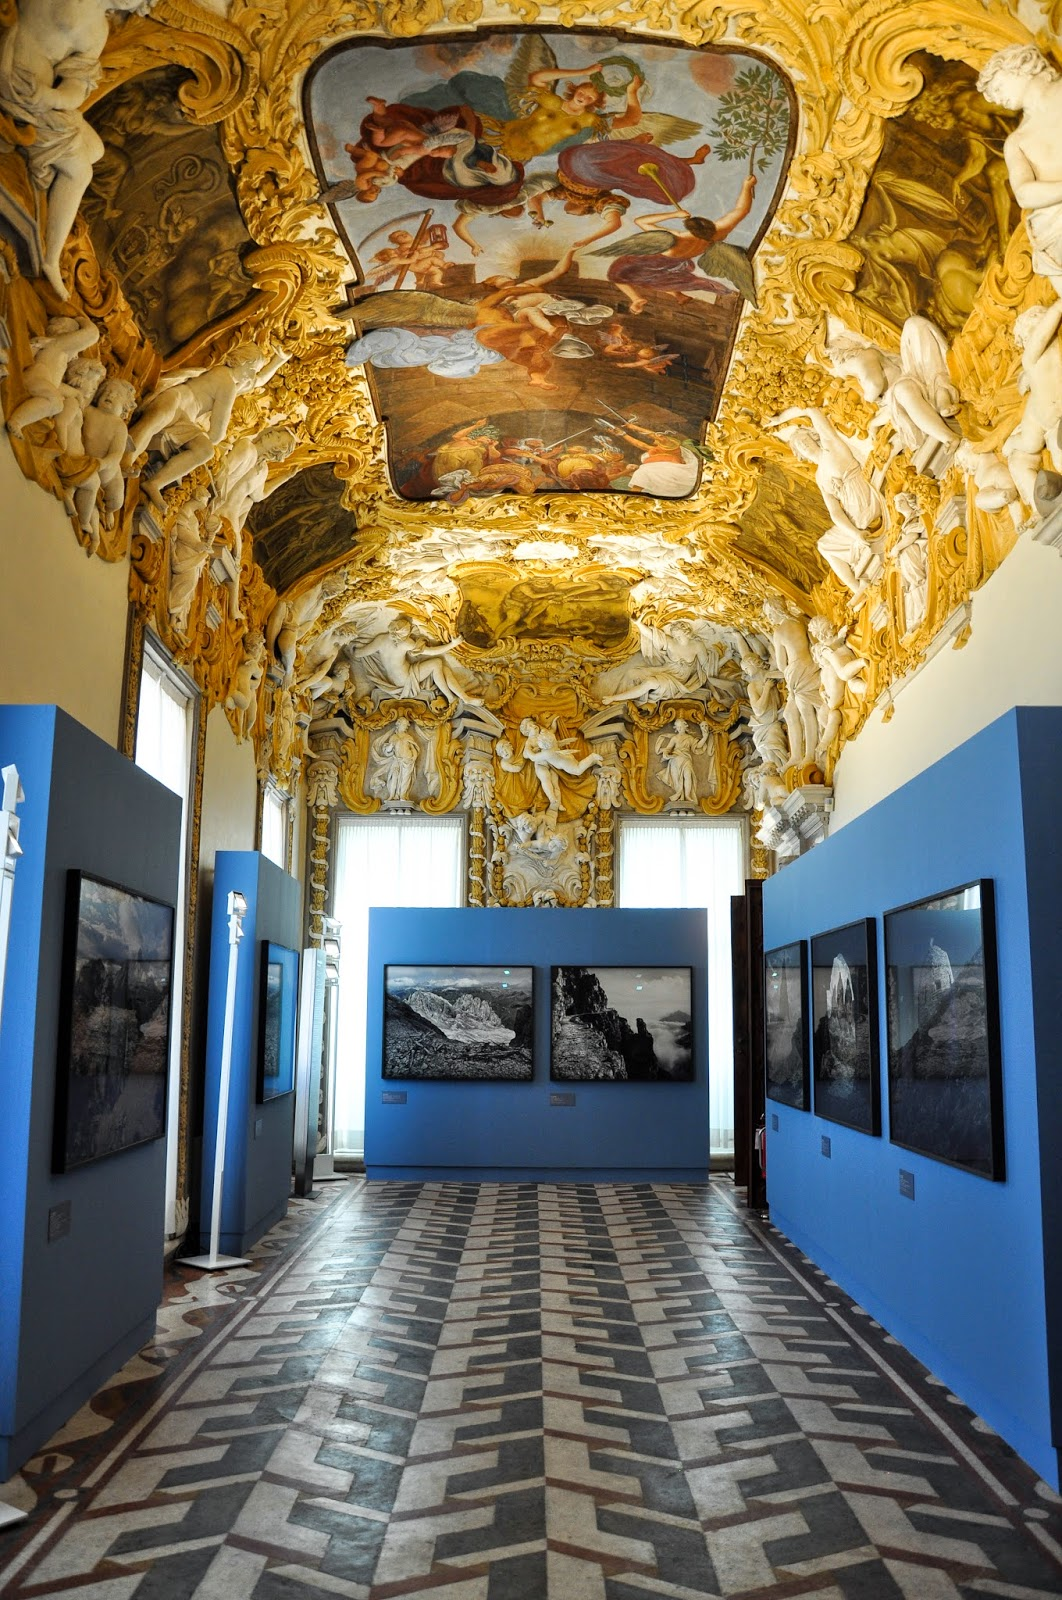 Part of the Great War exhibition, Gallerie D'Italia in Palazzo Leoni Montanari, Vicenza, Italy-2